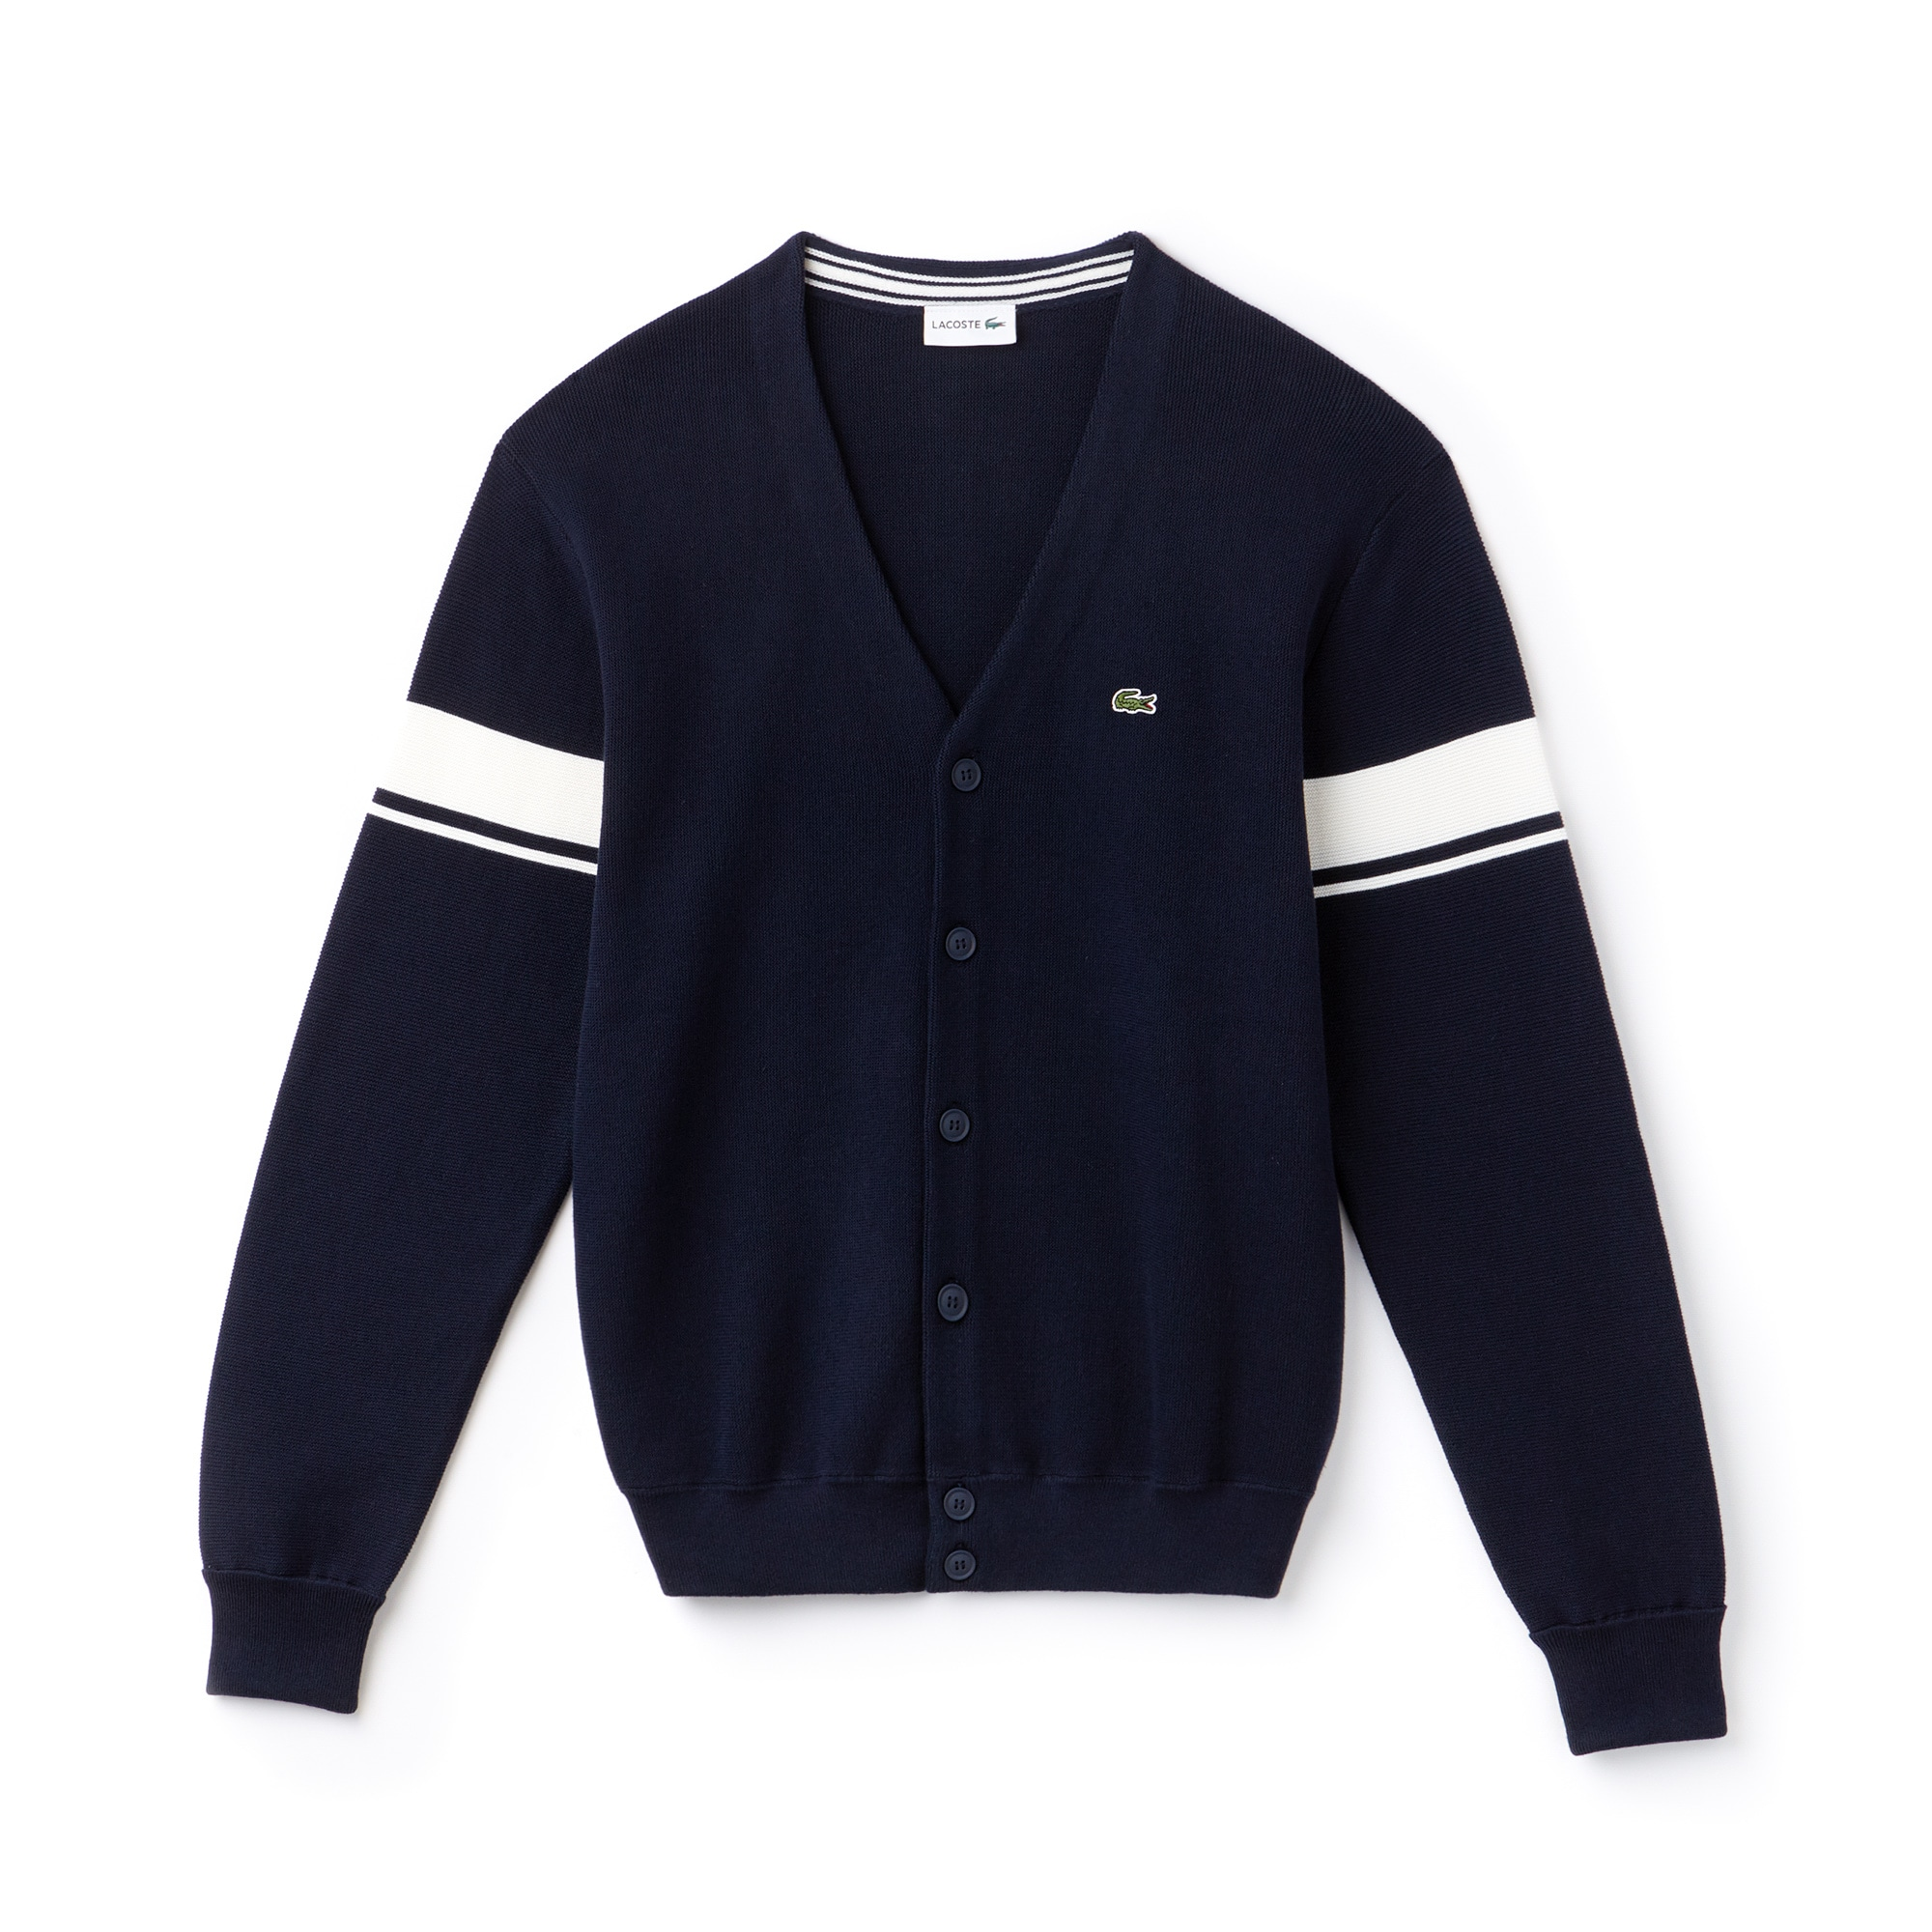 Men's Contrast Bands Seed Stitch Knit Cotton Cardigan